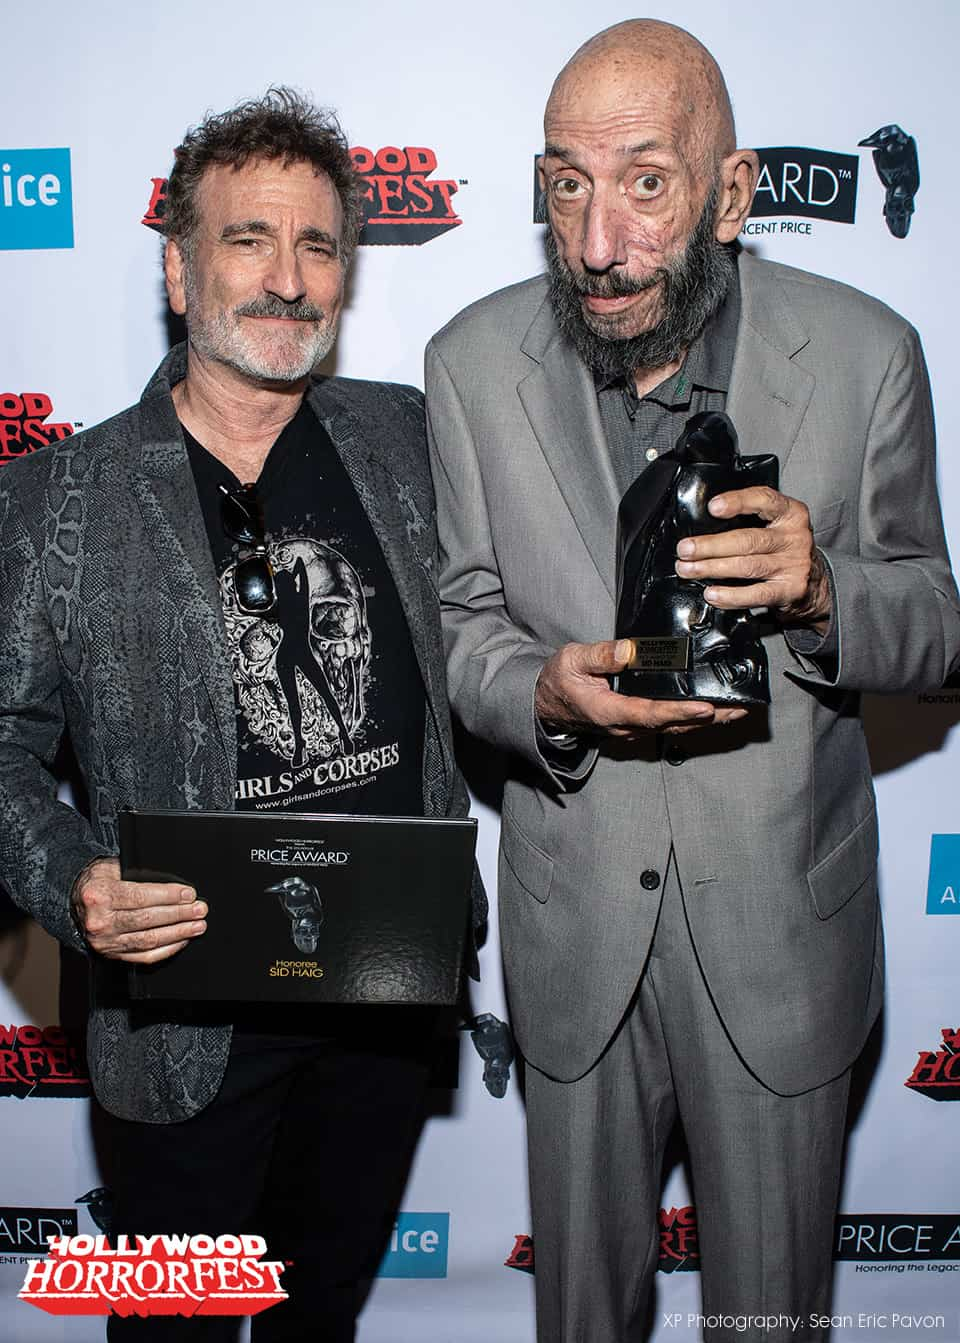 unnamed 8 - Images: Sid Haig Was Honored with the 3rd Annual Price Award